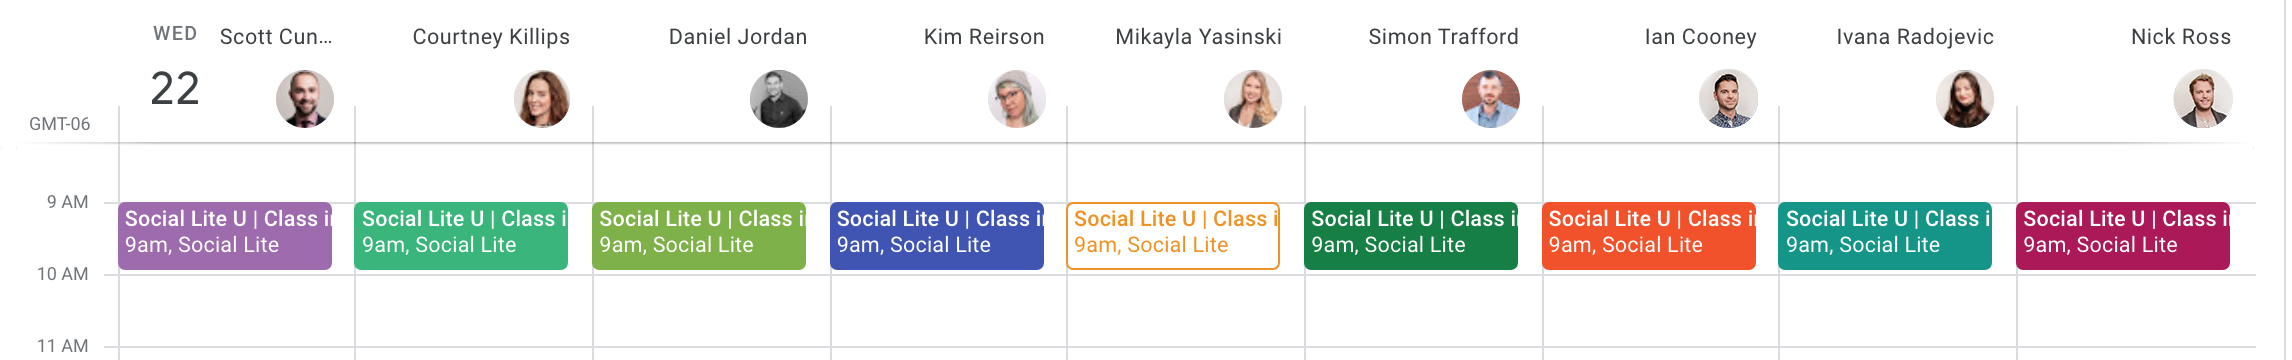 Social Lite U | Class in Session